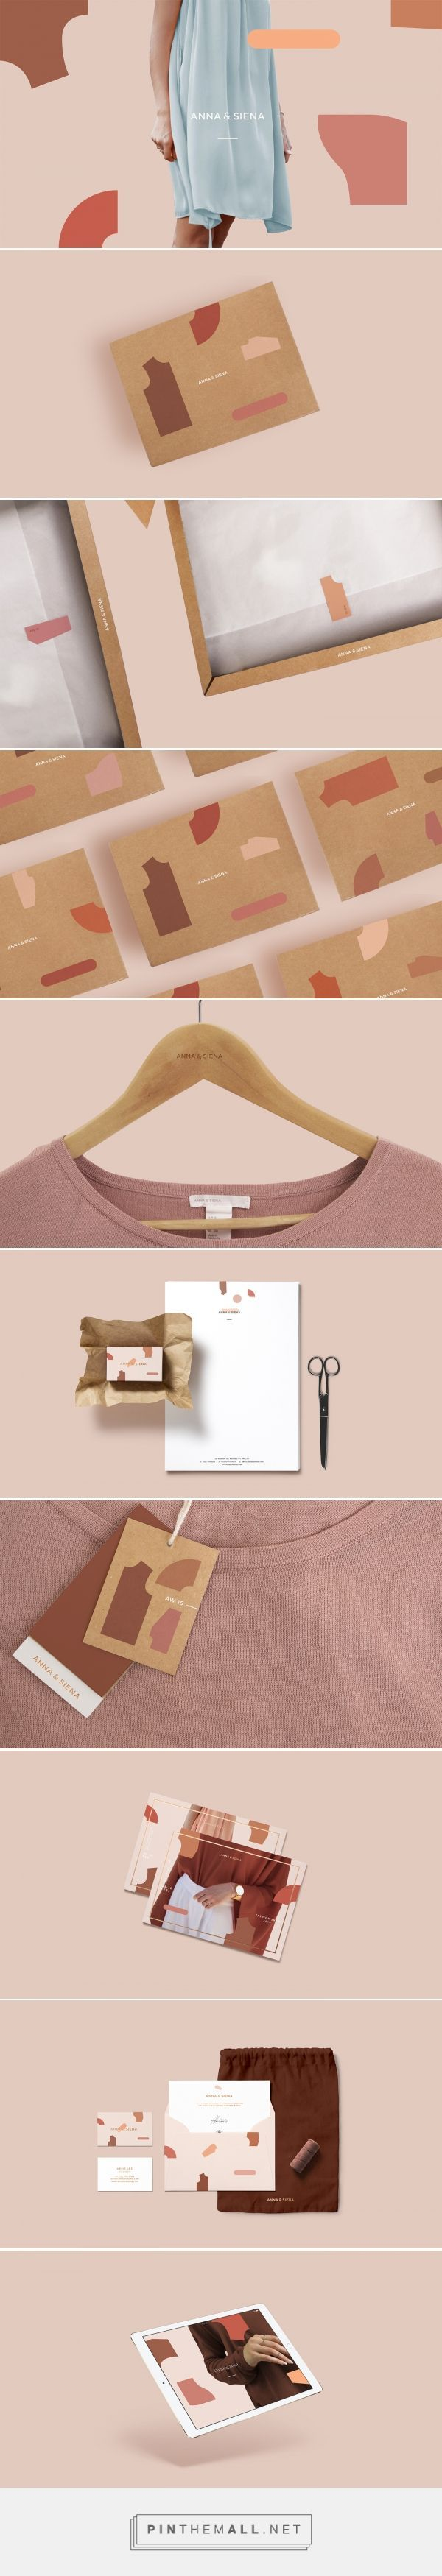 I really like how the brand design shown here is consistently incorporated into every aspect of the clothing line, from tags to the hangers to the stickers that hold the tissue paper together in the shipment box.